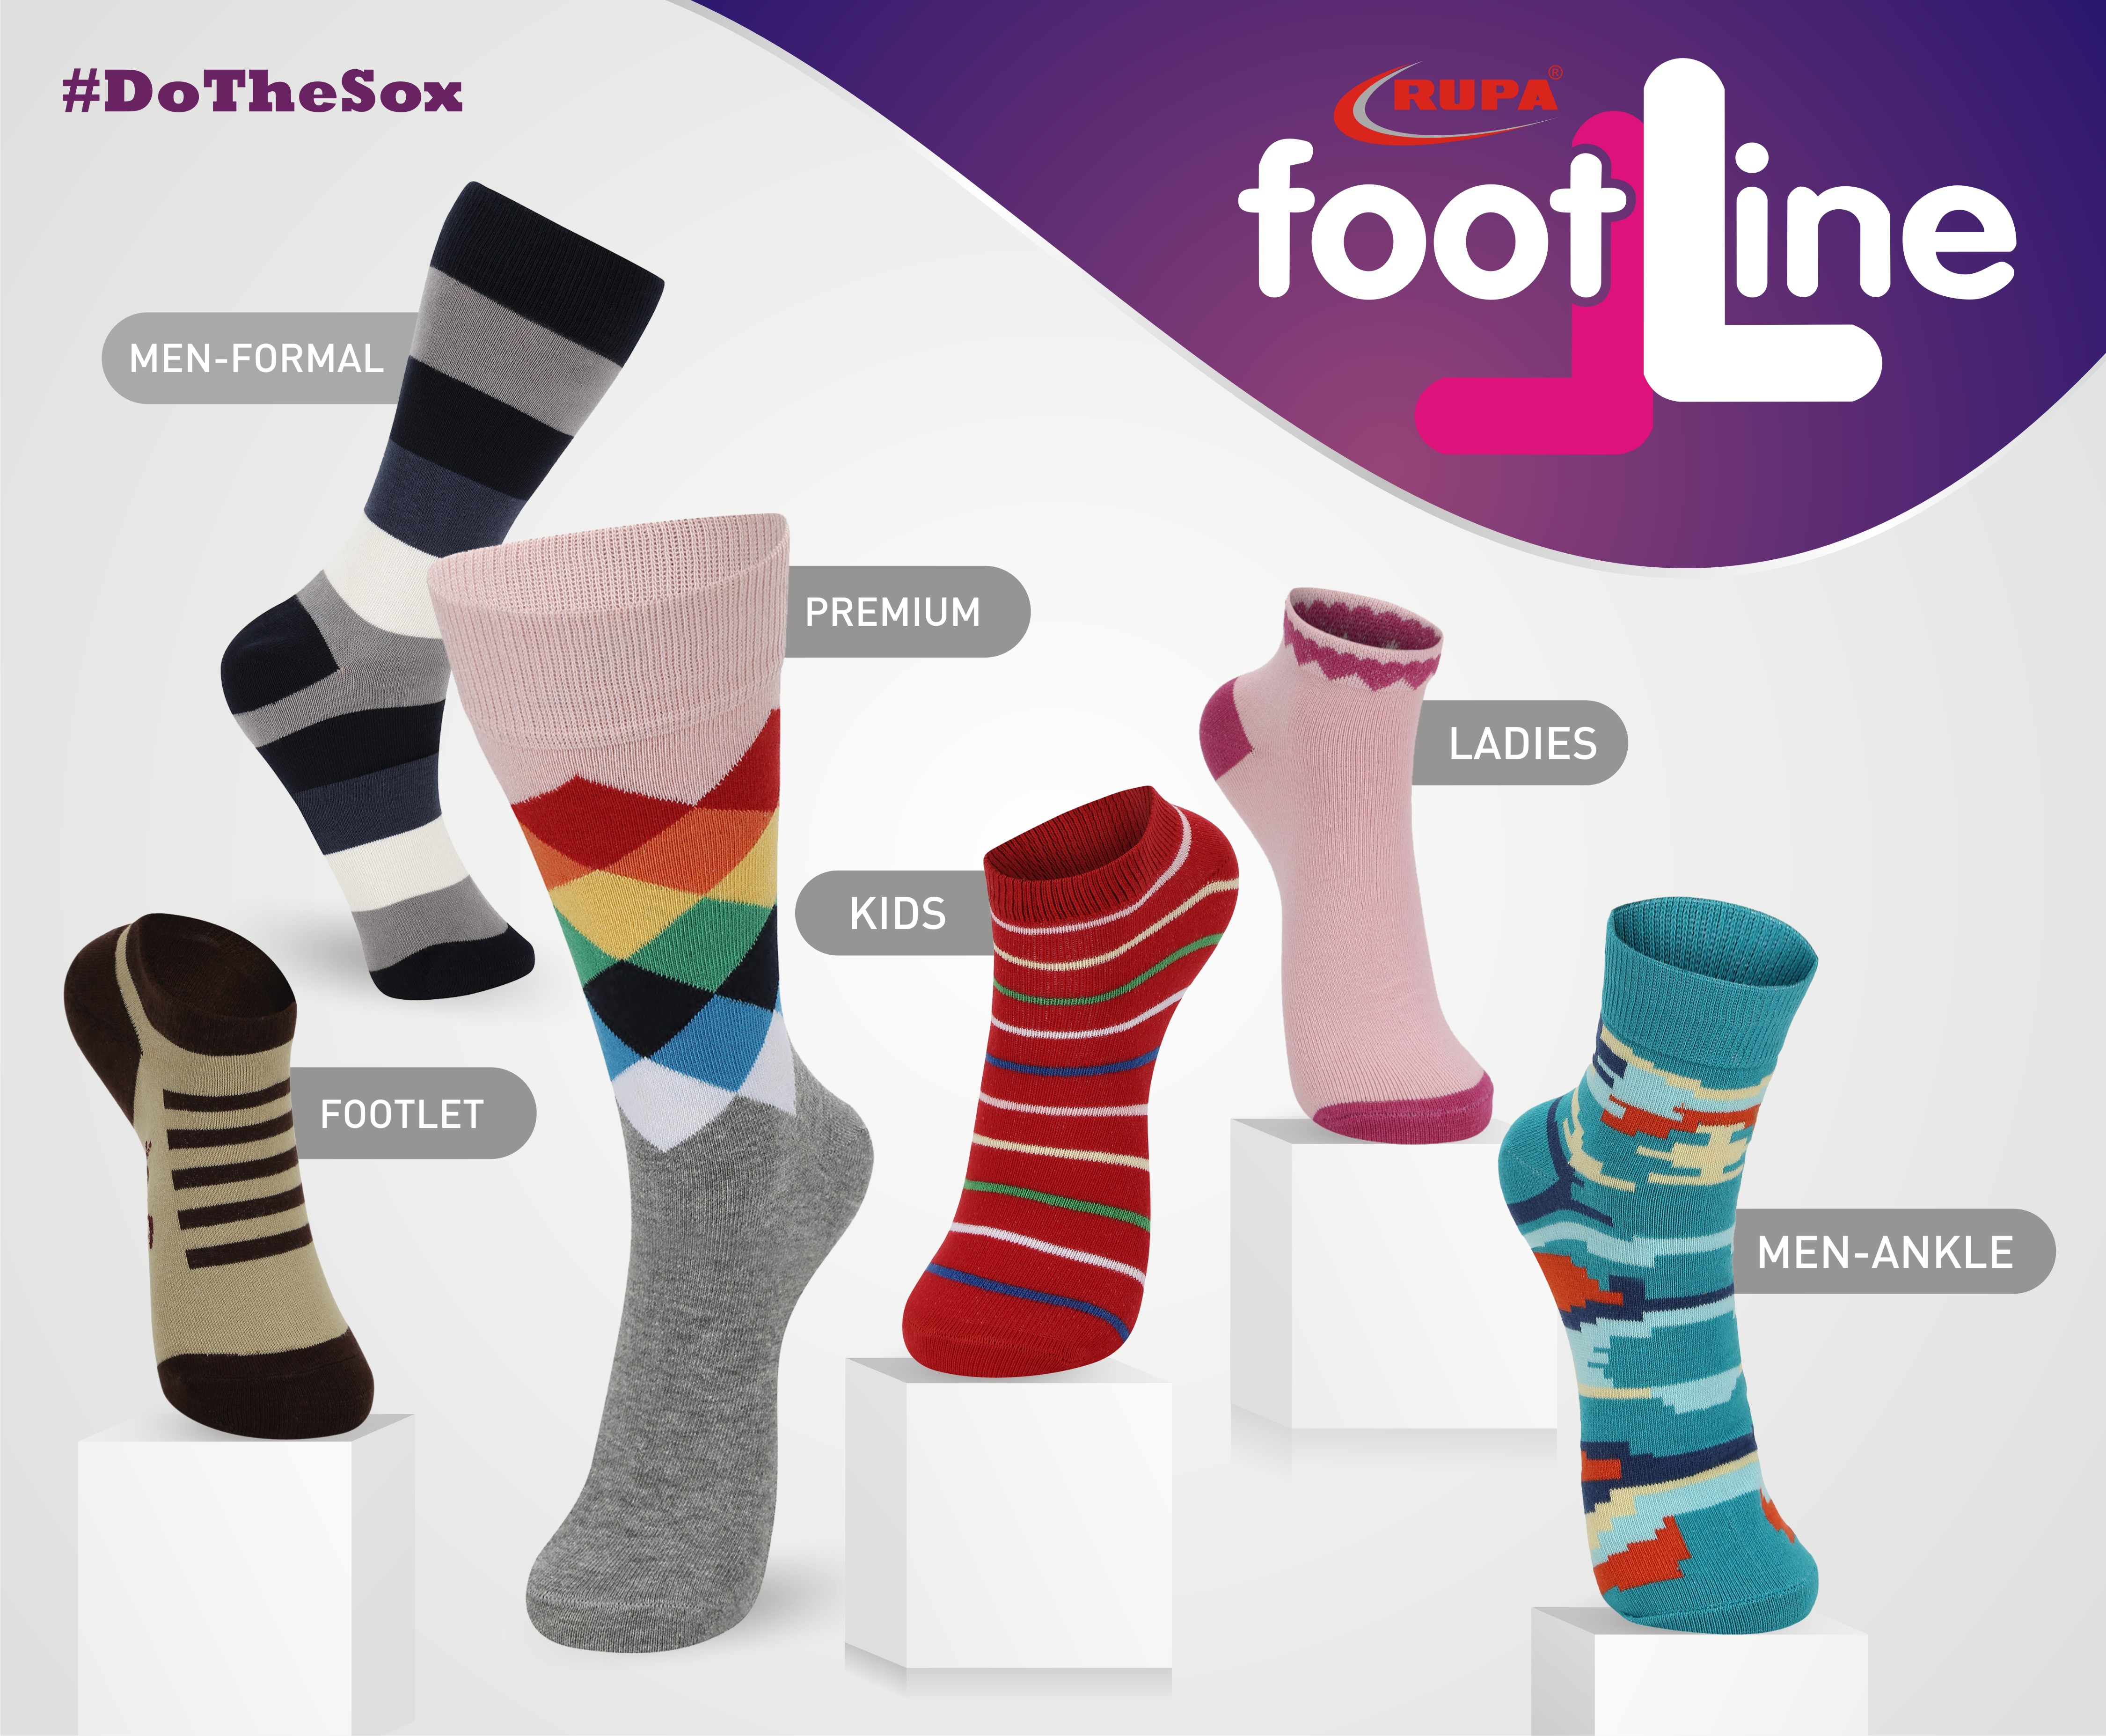 Rupa Footline launches a brand new collection of Designer Socks